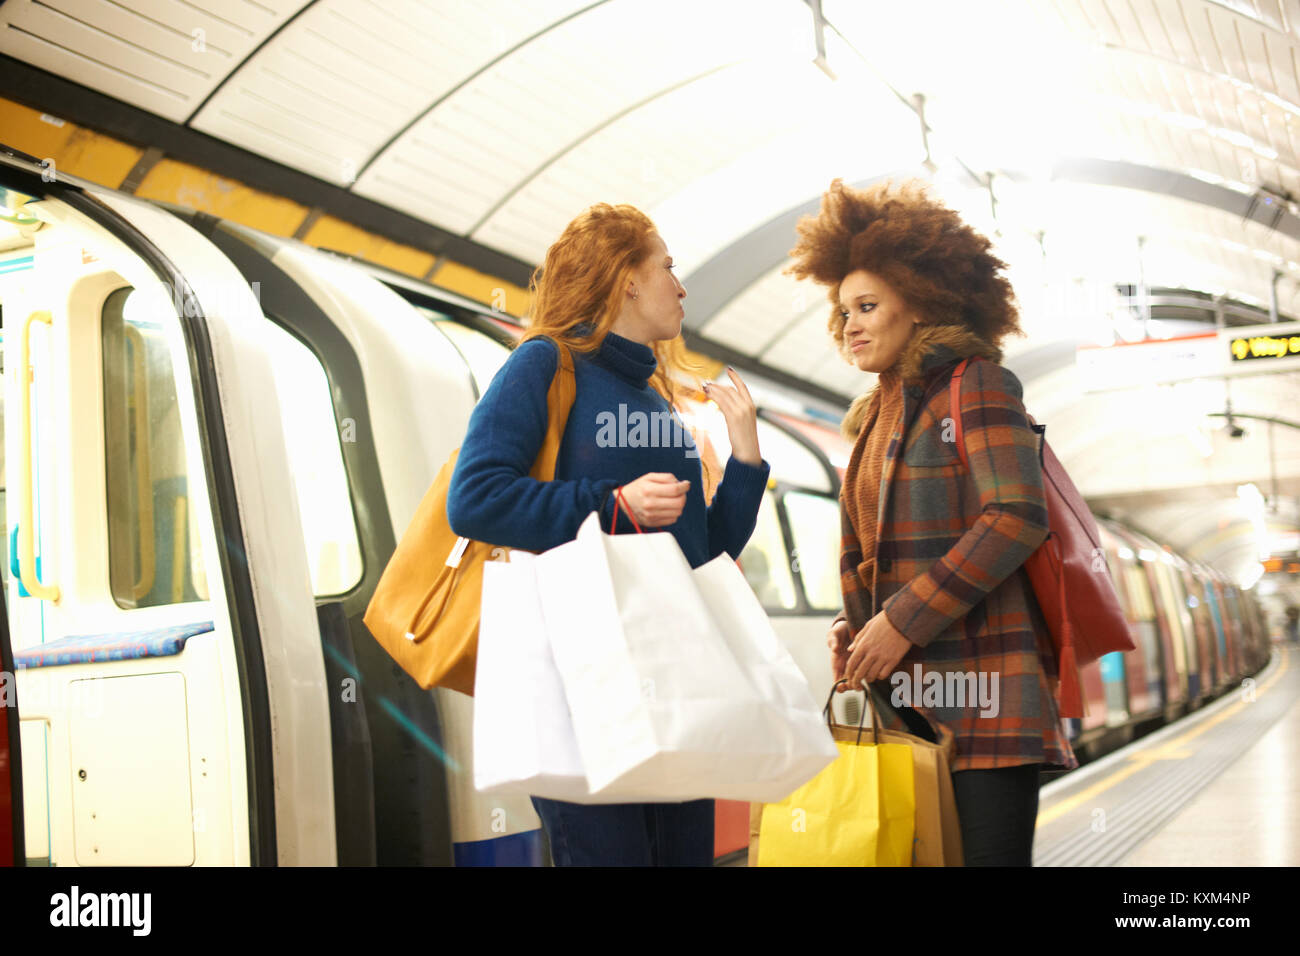 Two young women standing on underground train platform,holding shopping bags - Stock Image